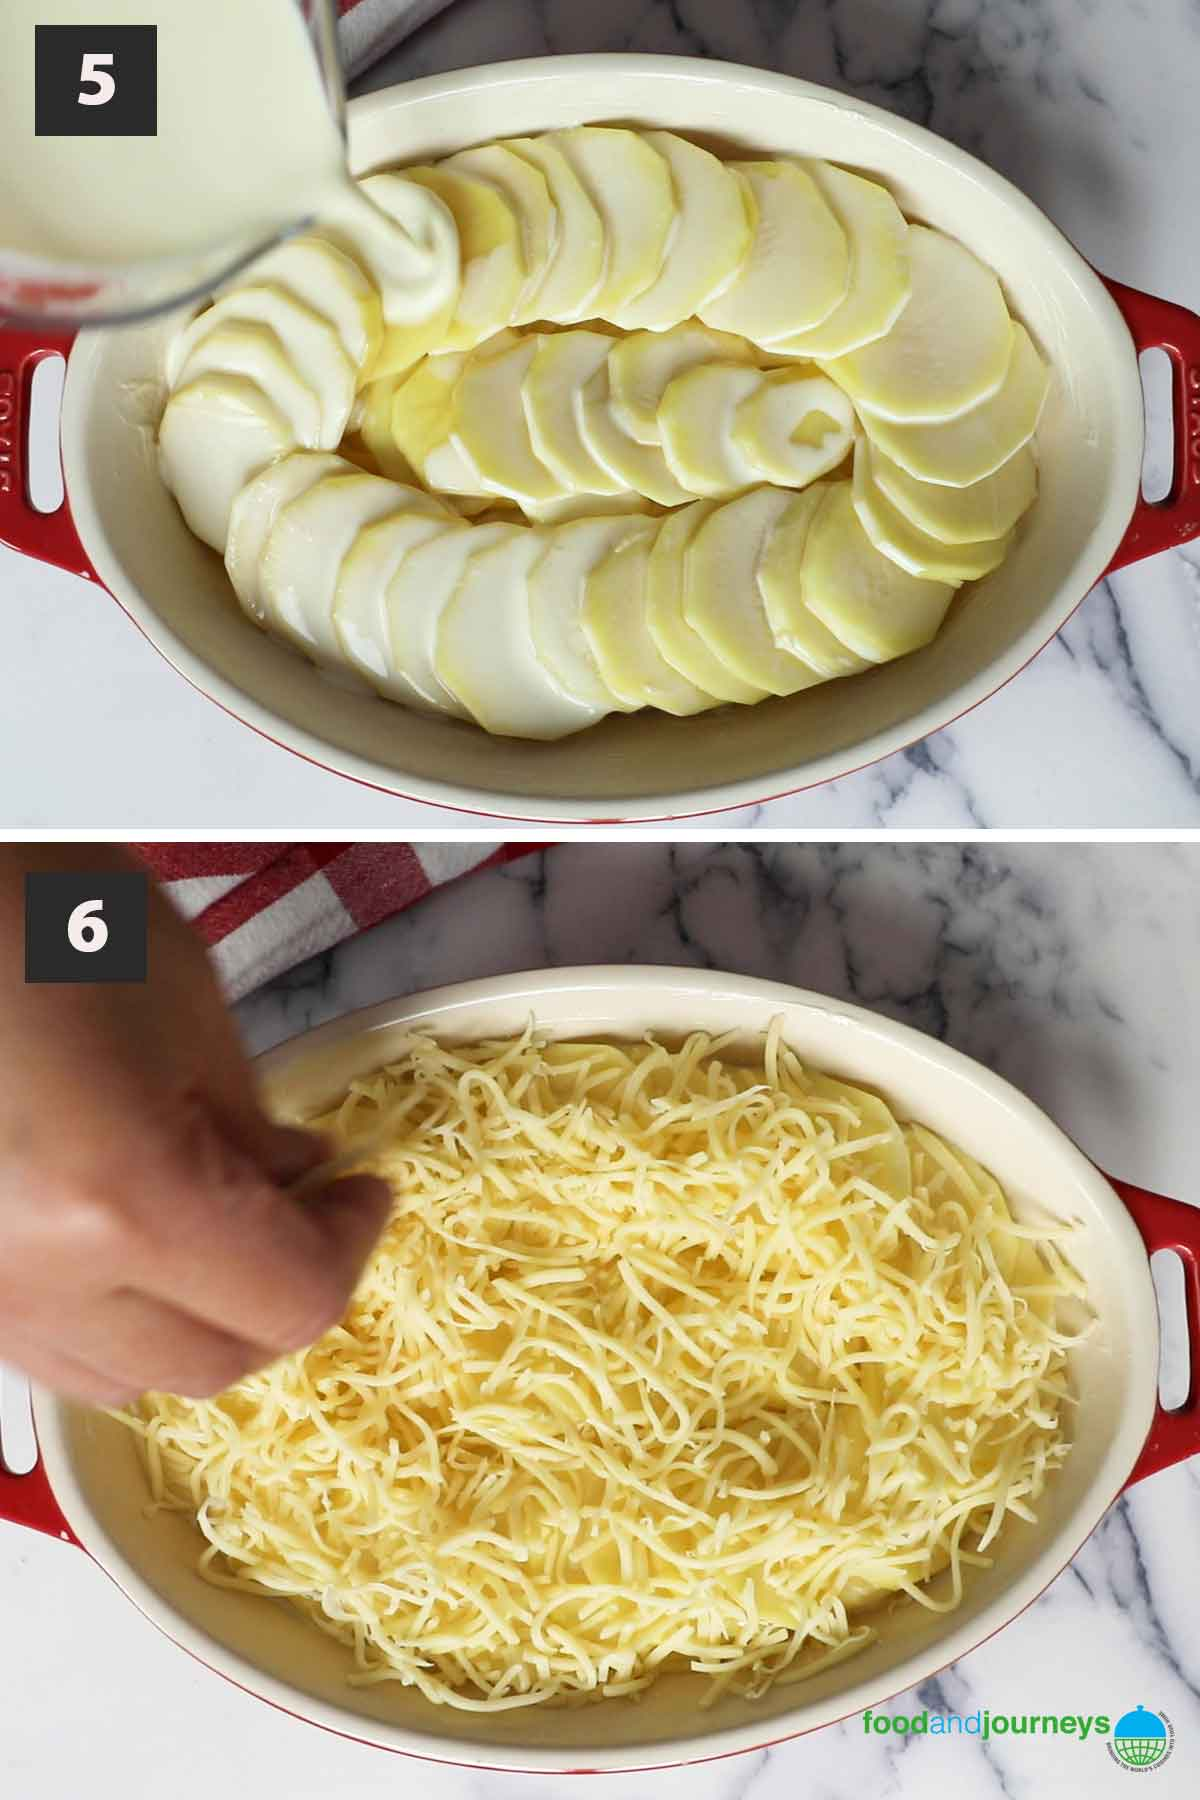 Second part of a collage of images showing the step by step process of making German Potato Gratin at home.